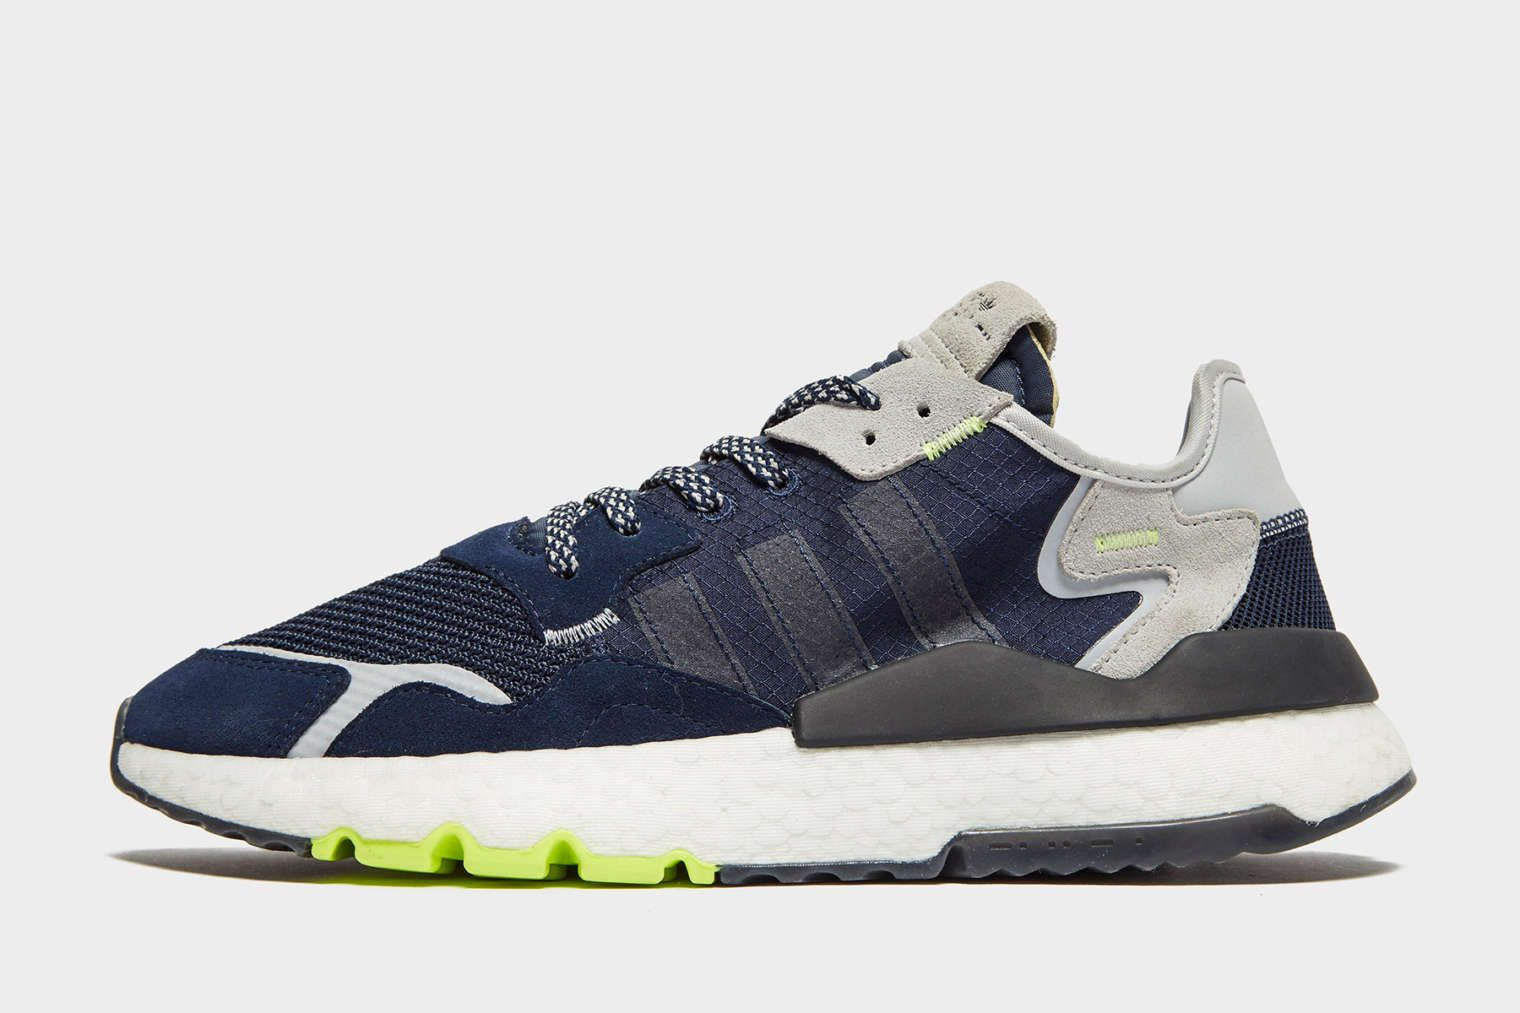 adidas Nite Jogger: Two JD Sports Exclusive Colorways